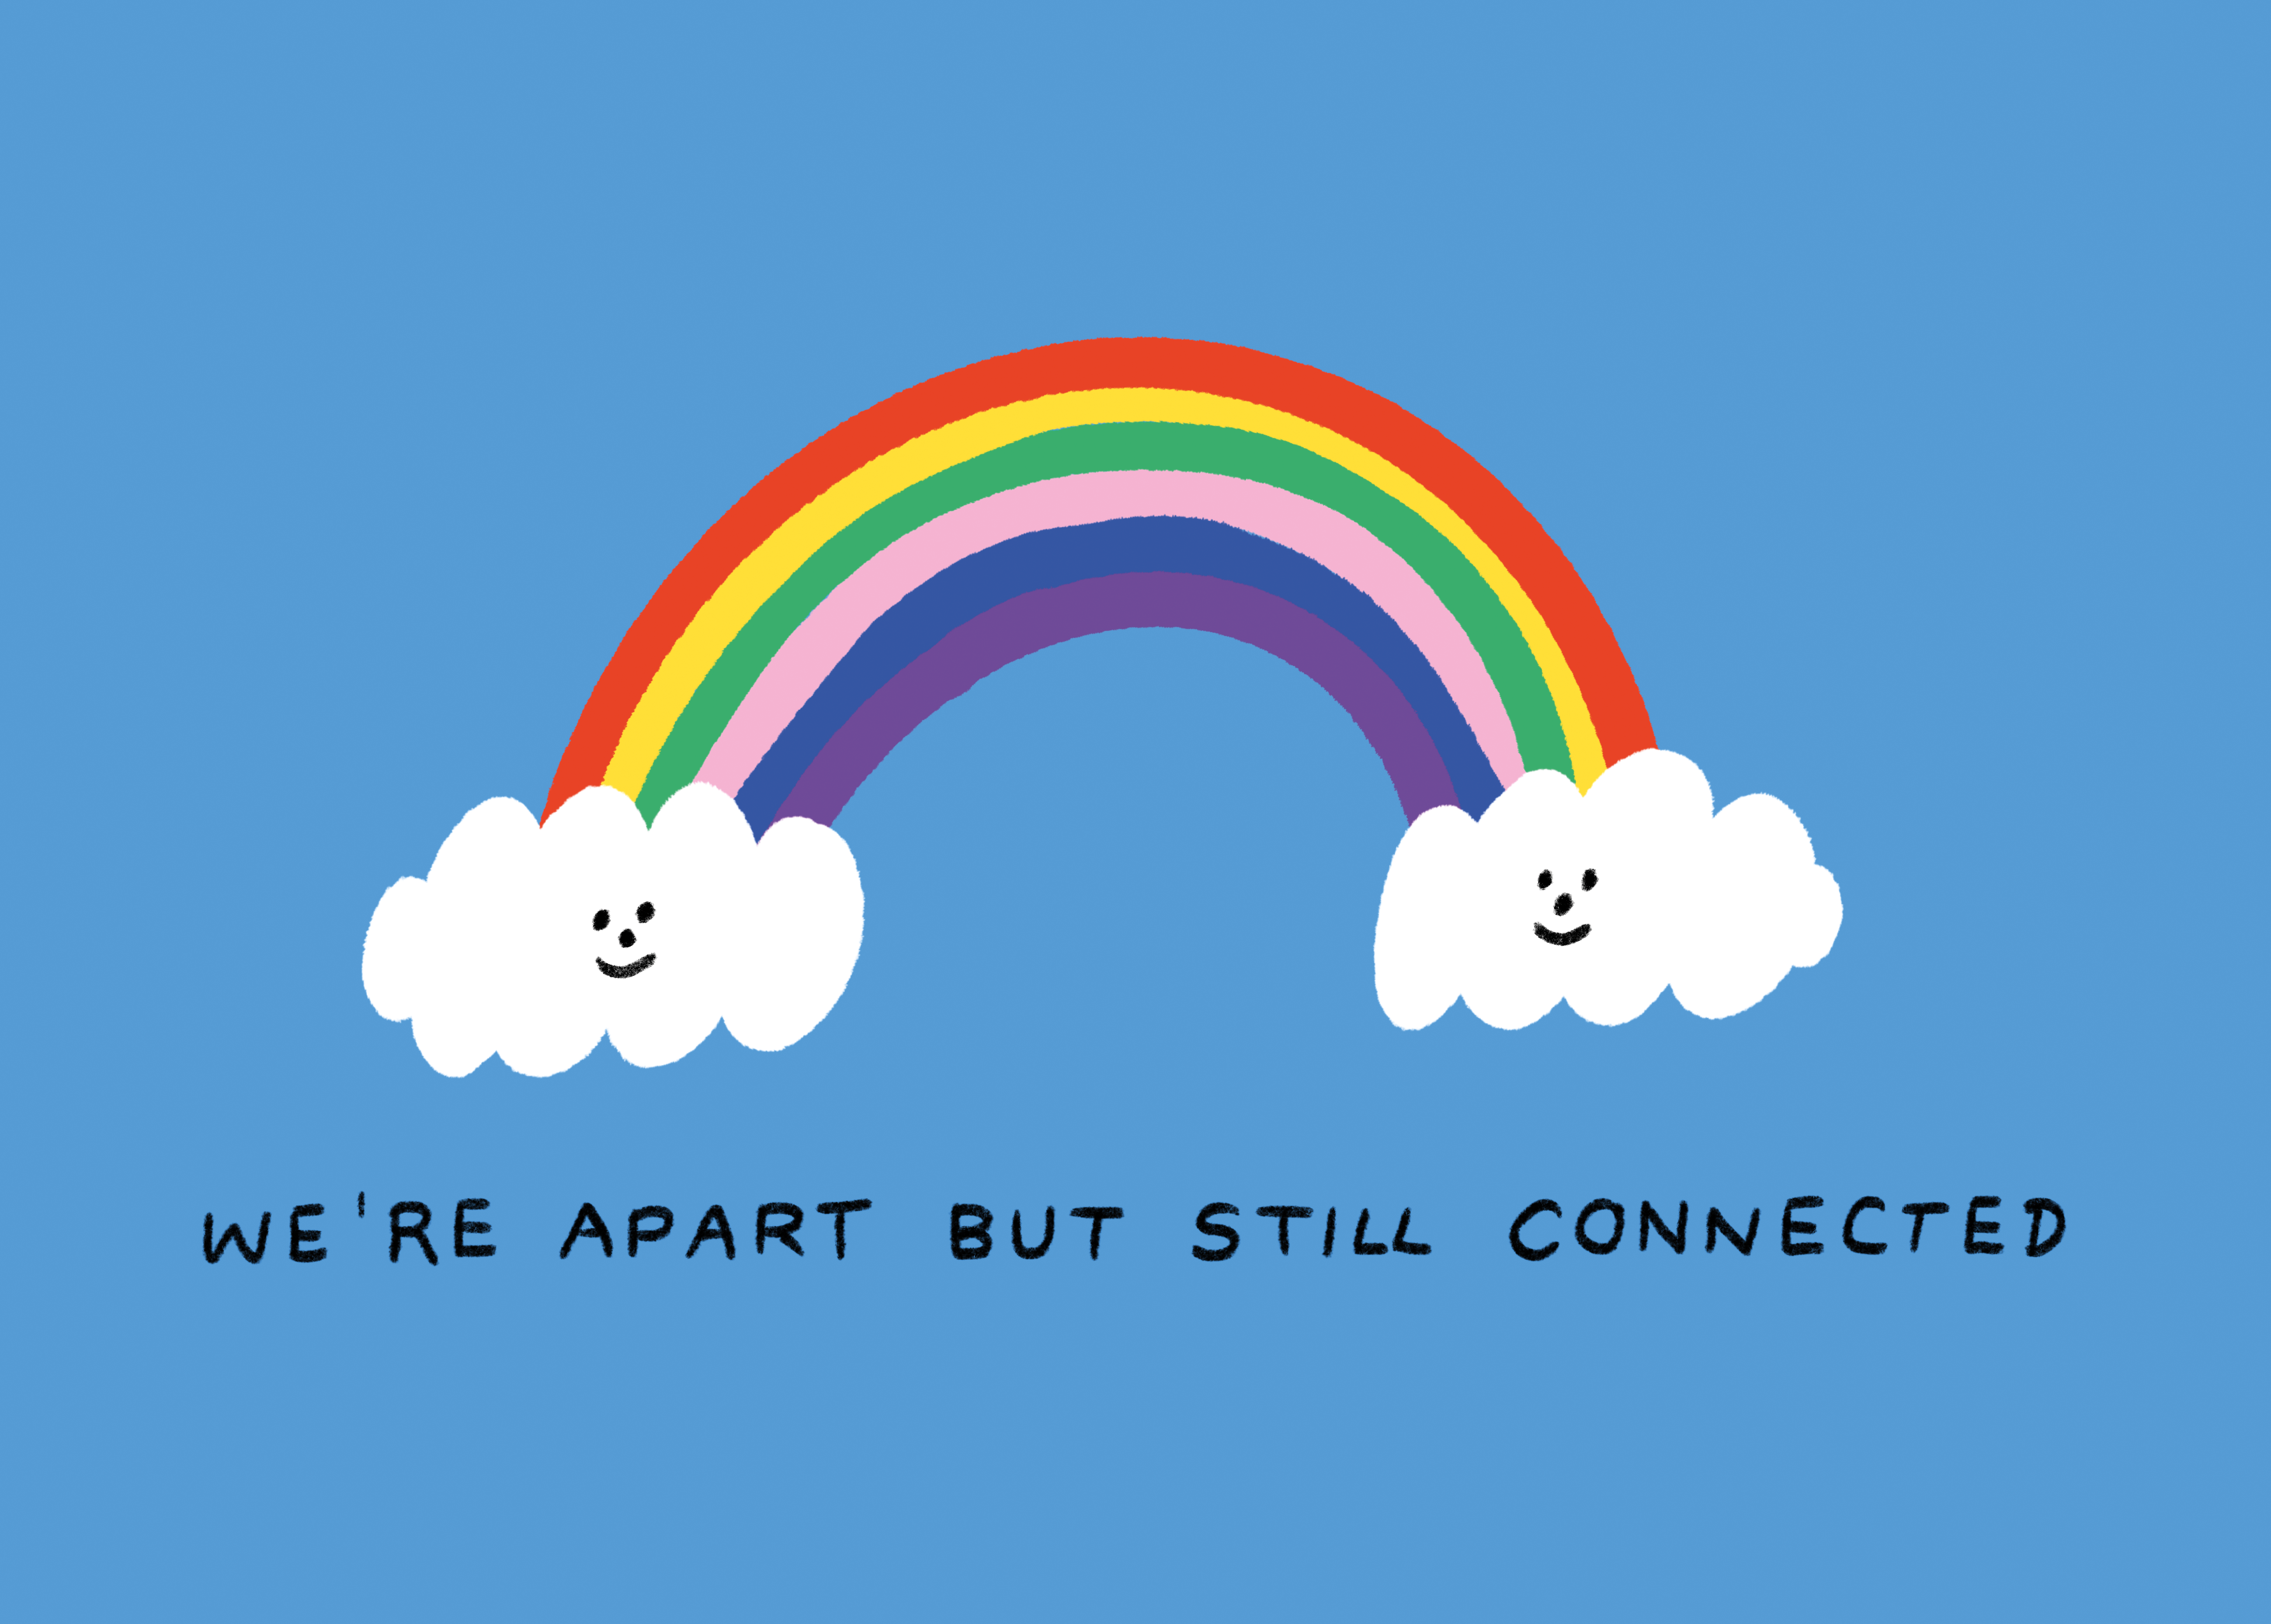 Rainbow with two smiley clouds about text reading: 'We're apart but still connected.'